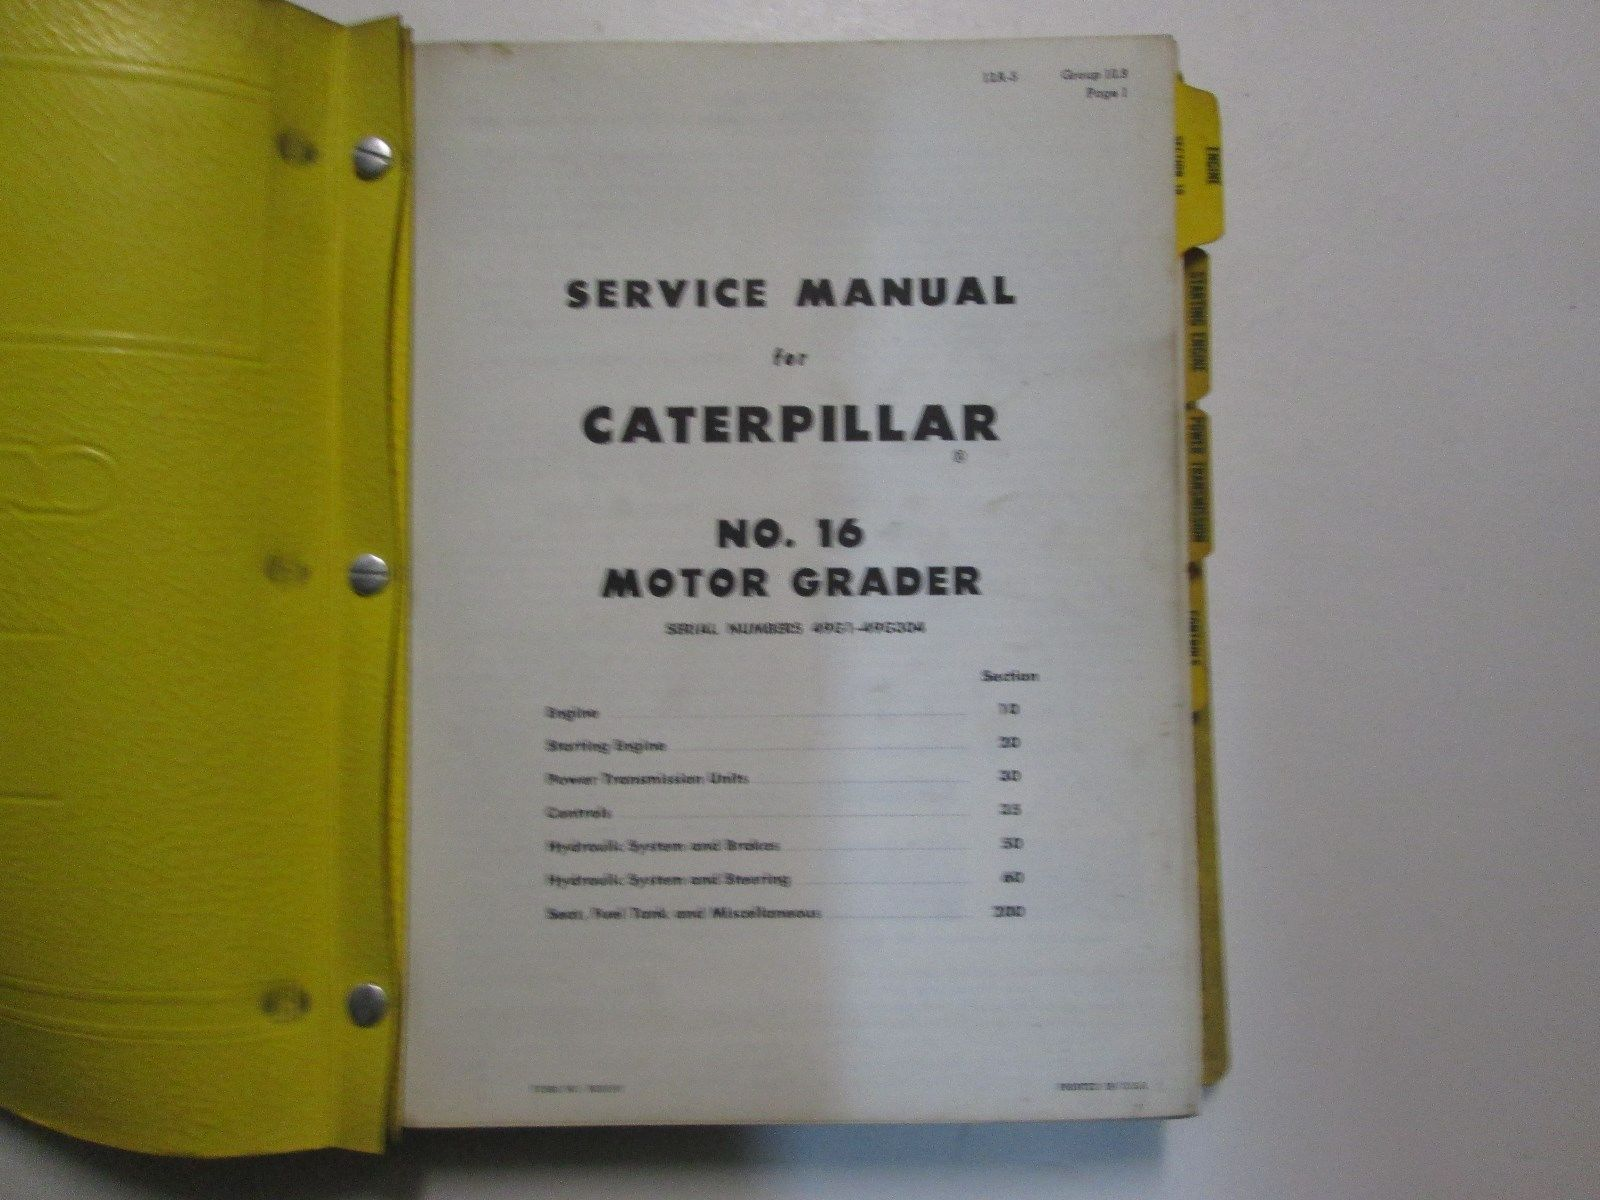 Caterpillar No. 16 Motor Grader Service Manual 49G1-49G304 USED OEM CATERPILLAR